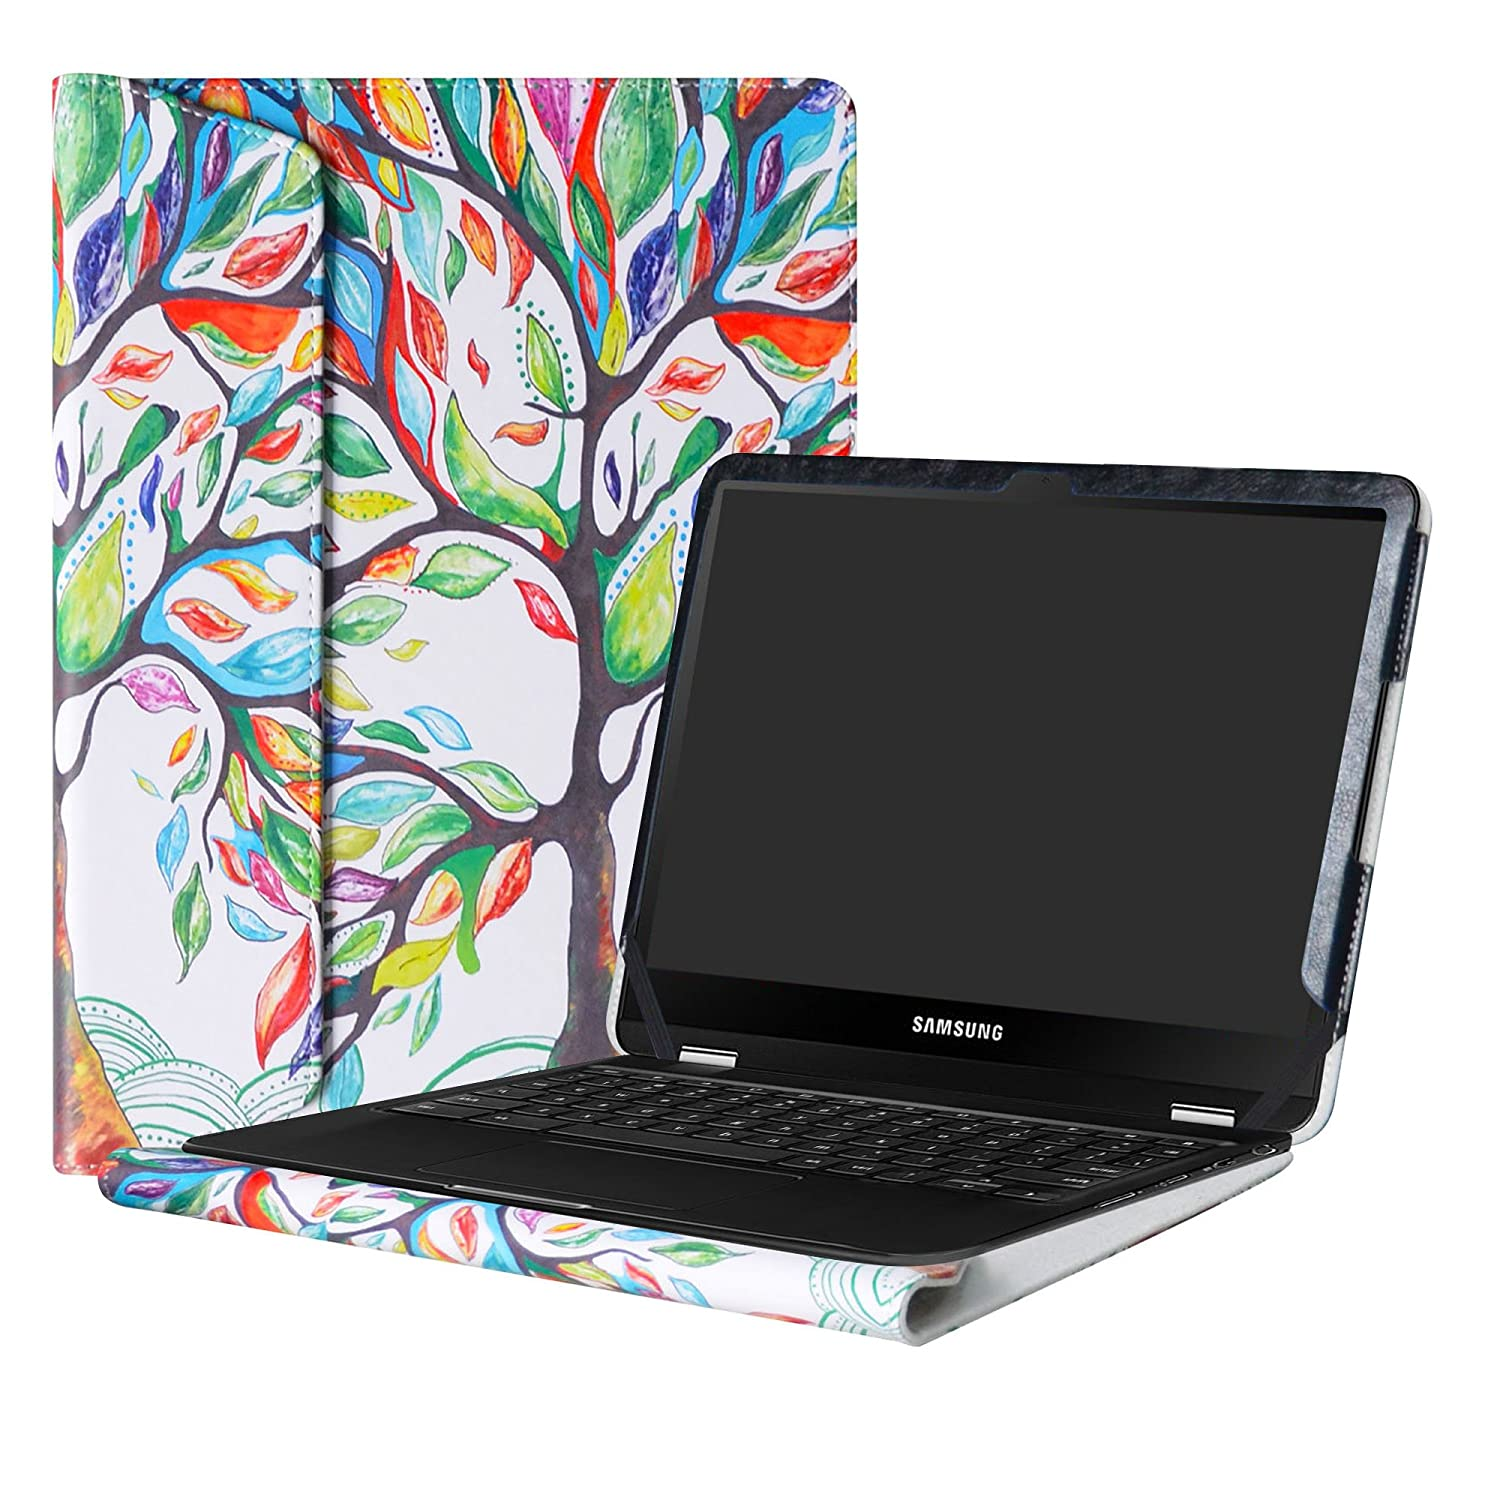 Case Cover 12.3 Inch for Samsung Chromebook Plus XE513C24 Protective Hard Shell